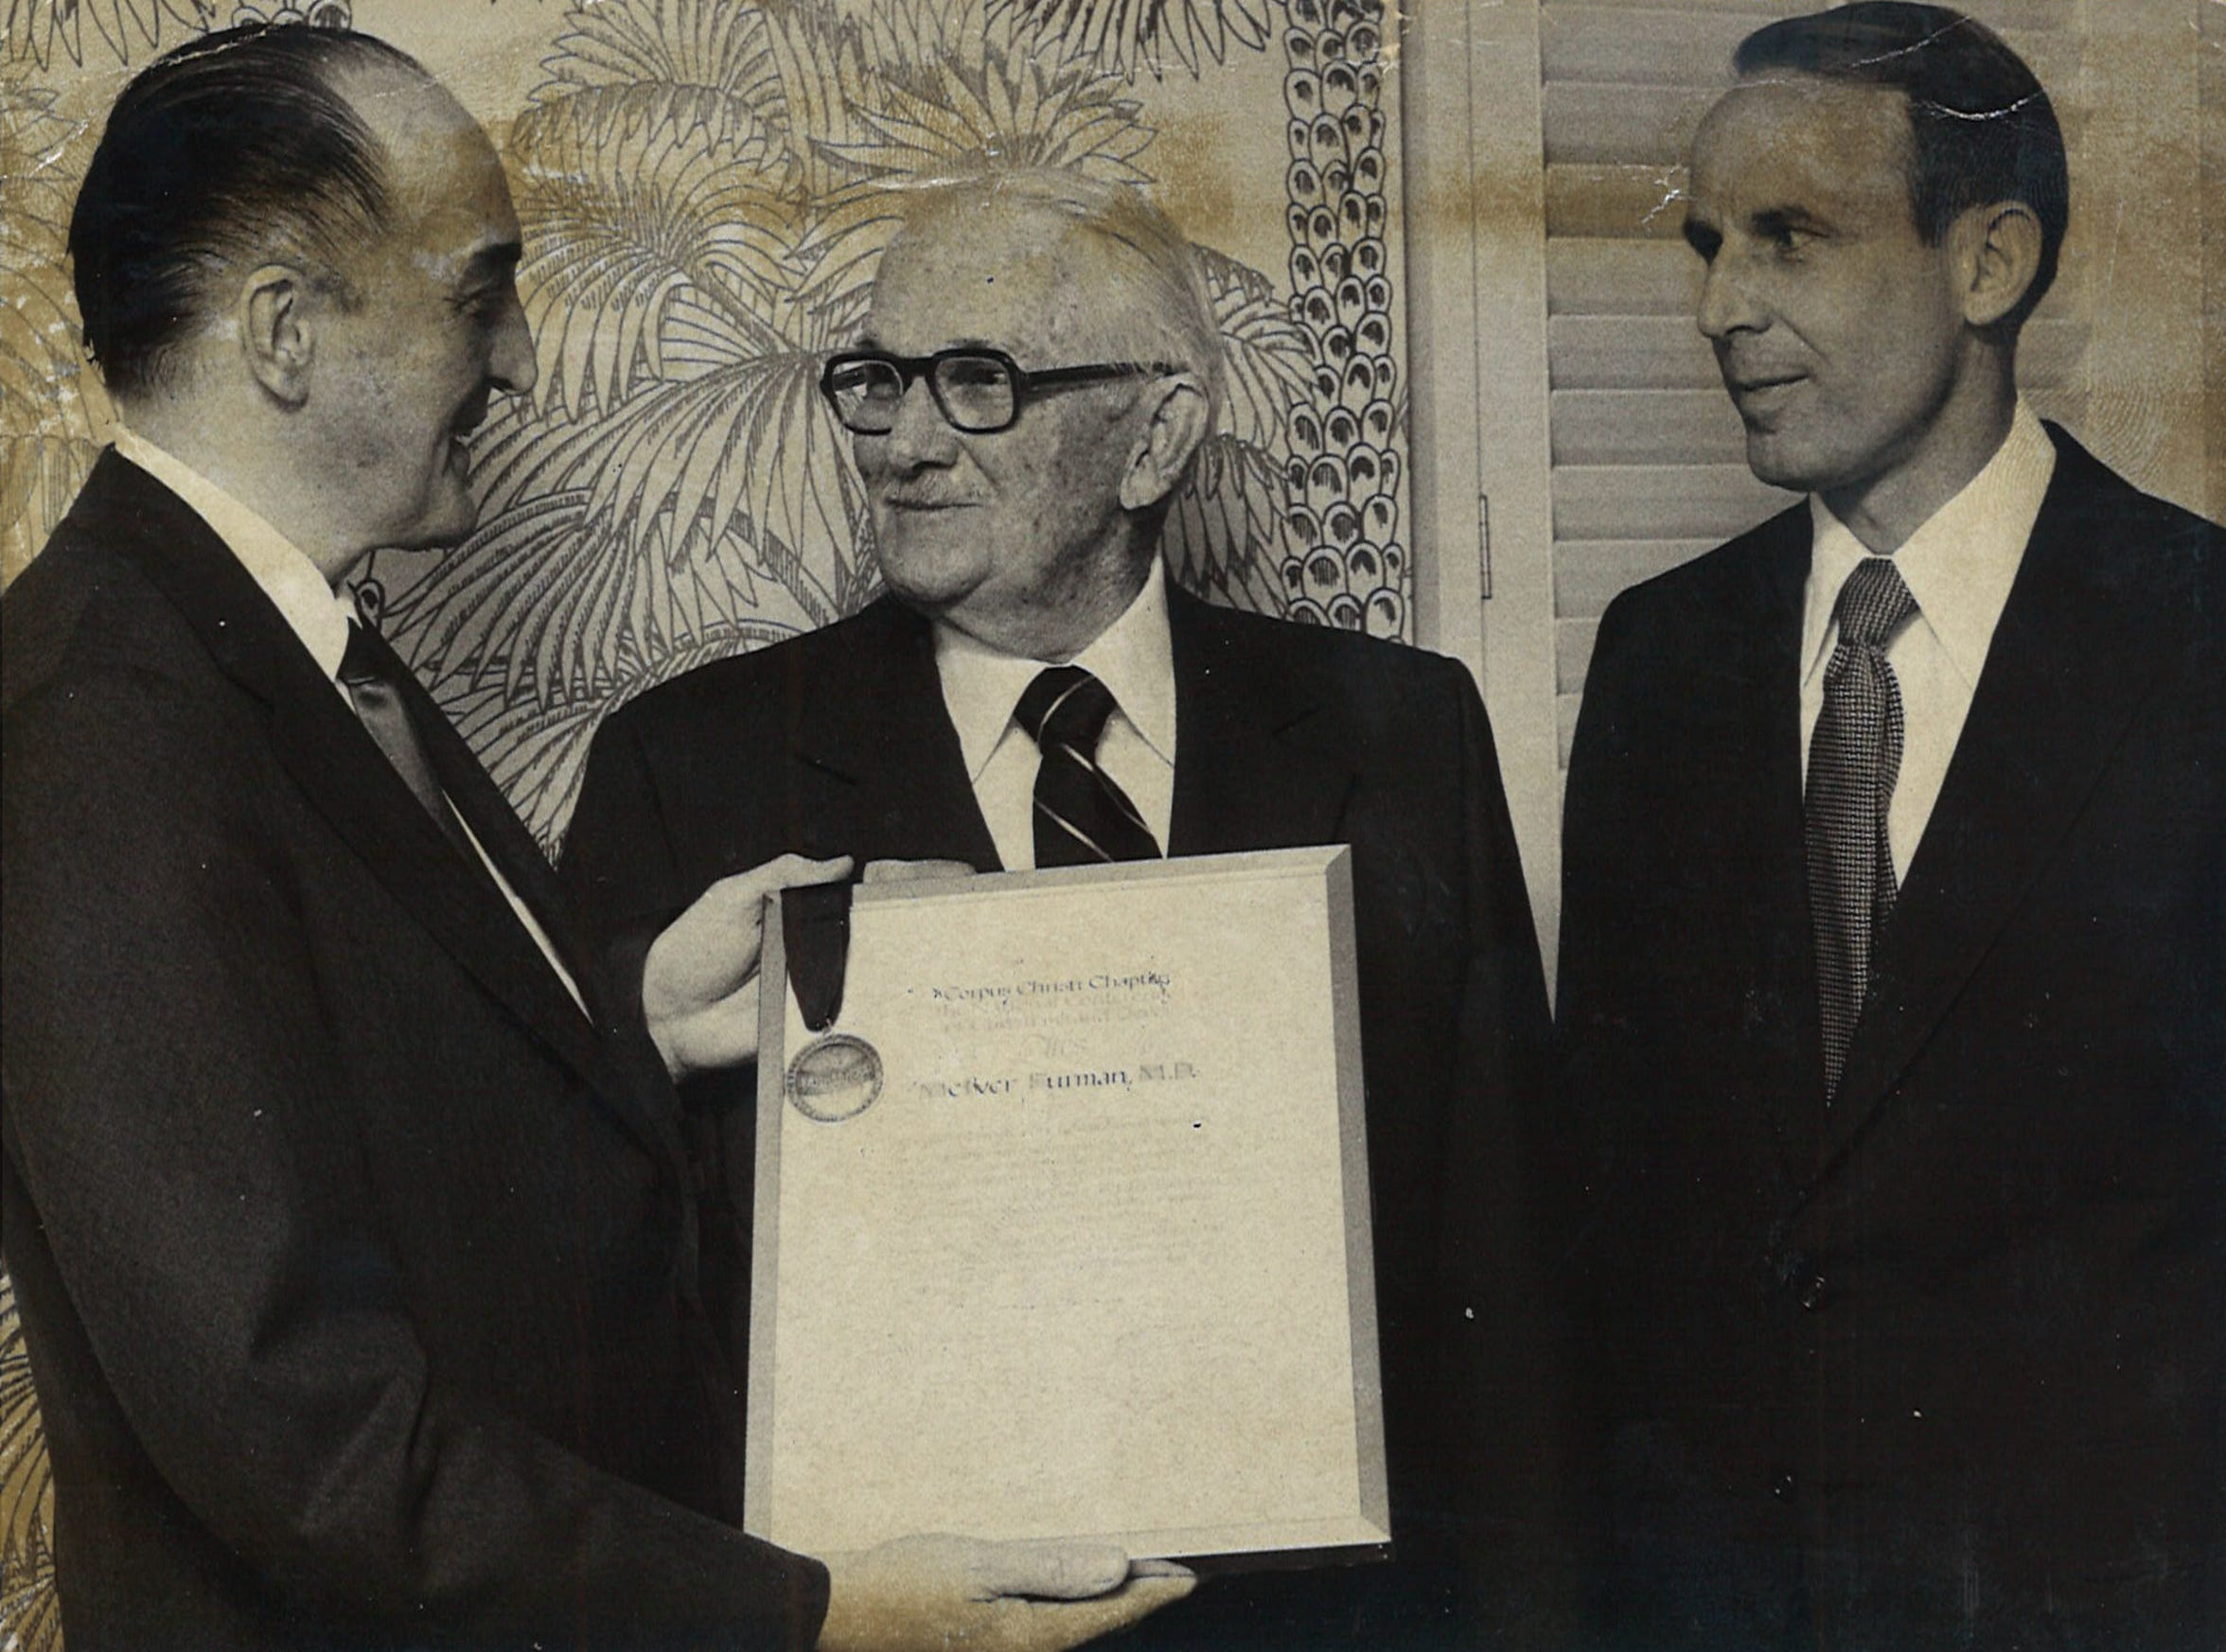 Dr. McIver Furman (center) received the Brotherhood Aware from the National Conference of Christians and Jews on April 5, 1973. Presentinf the award was Dr. David Hyatt (left) and F. Starr Pope Jr. (right).